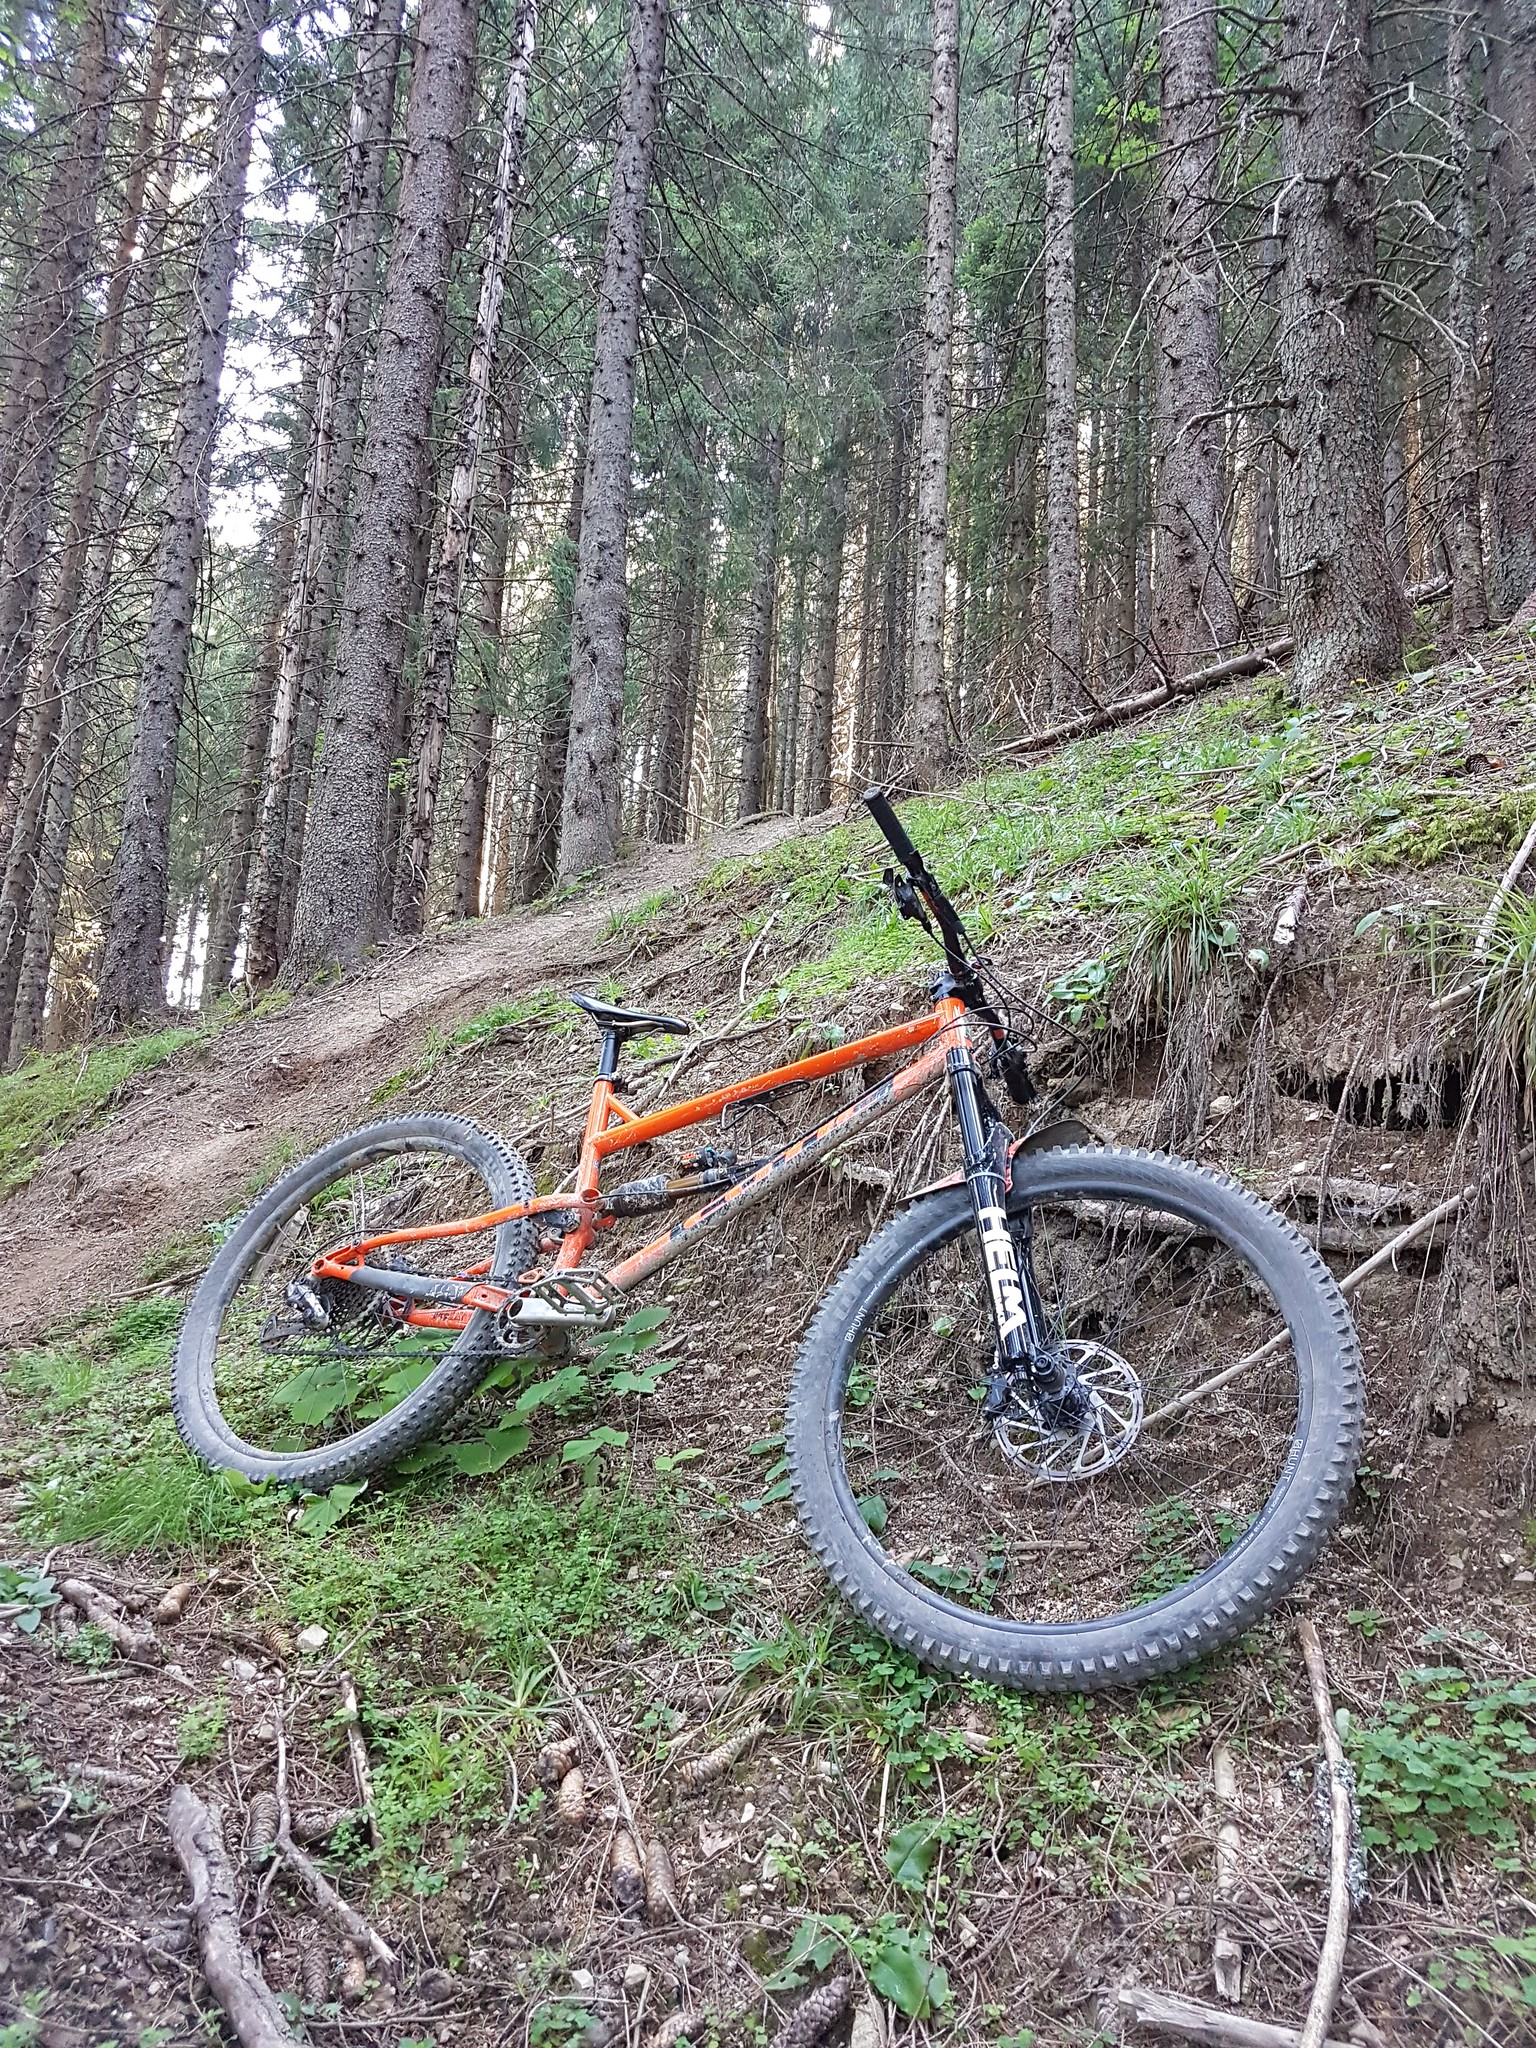 Cotic RocketMAX Morzine Off Piste, Cotic RocketMAX, steel full suspension, UK made, Reynolds 853, Cy Turner, Cotic Bikes, enduro mountain bike, 29er mountain bike, full suspension mountain bike, steel is real